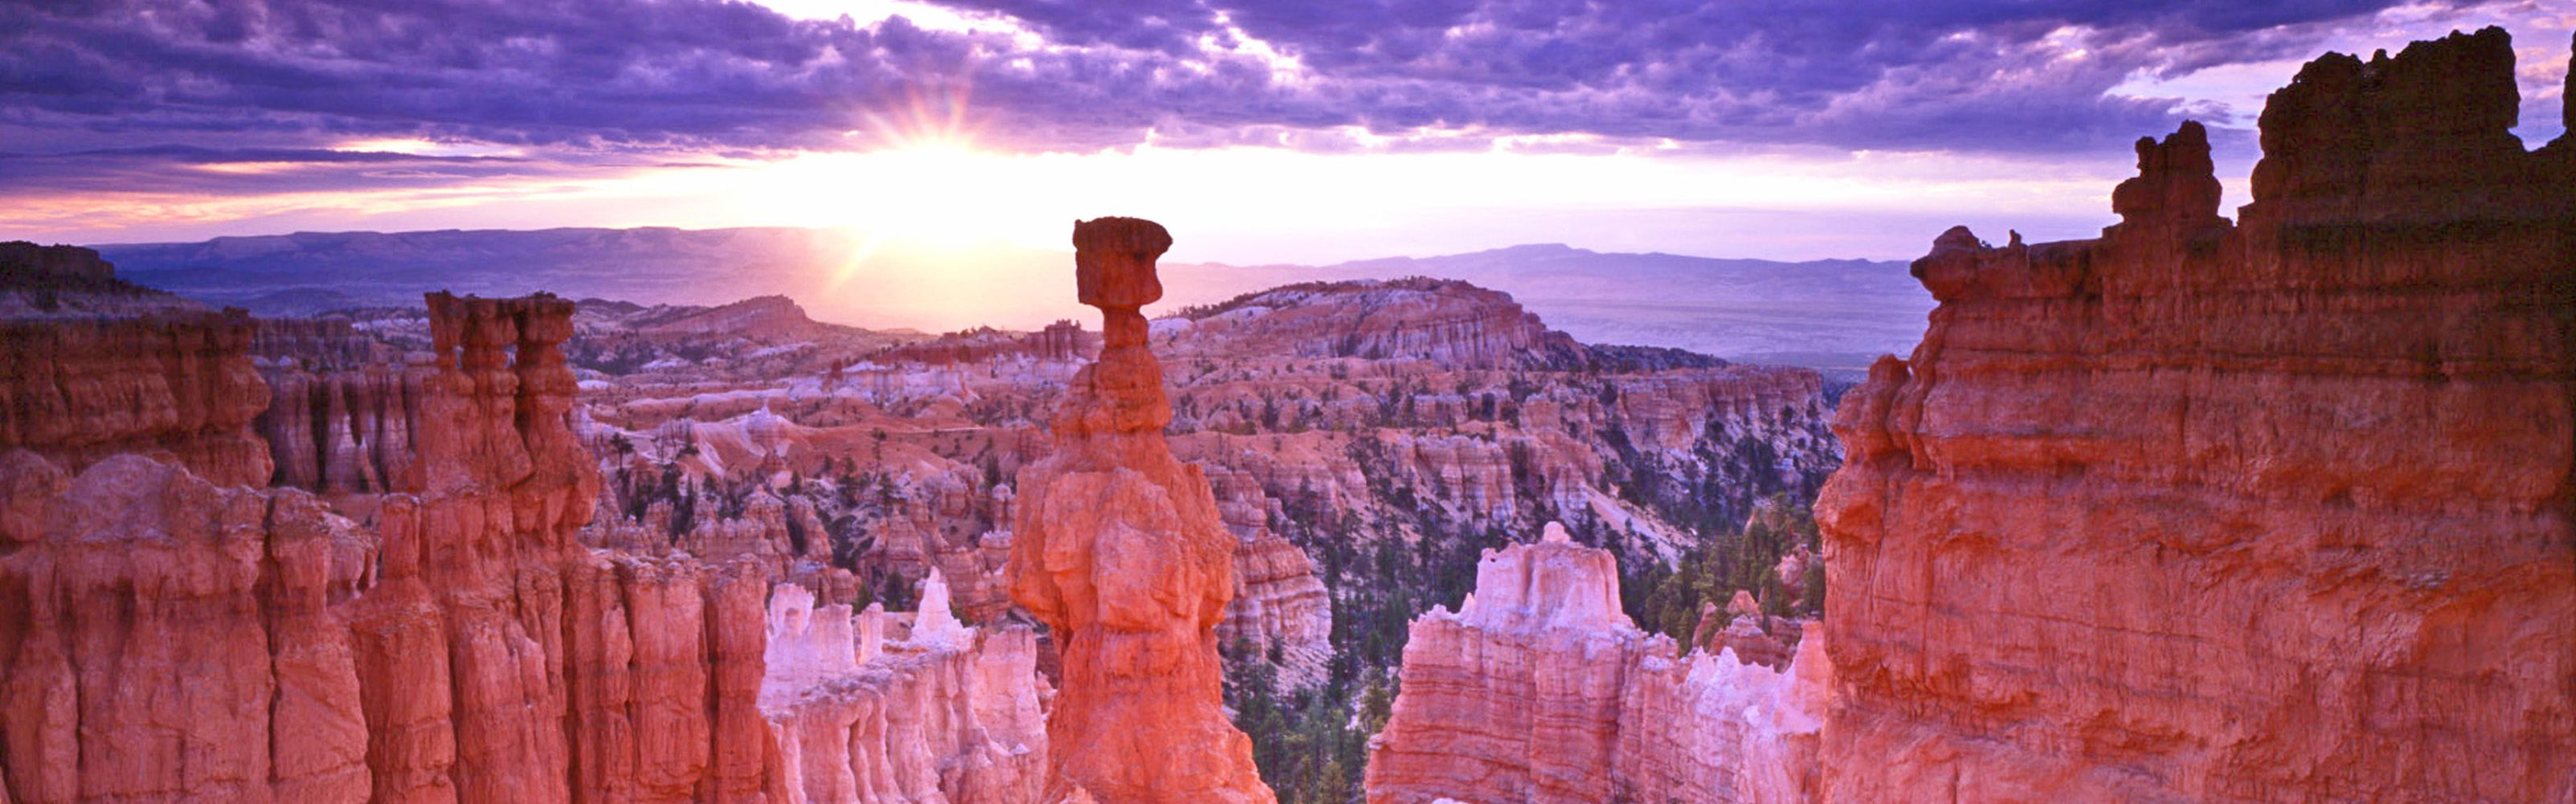 Bryce Canyon-Thors Hammer-Utah Office of Tourism by Camille Johnson